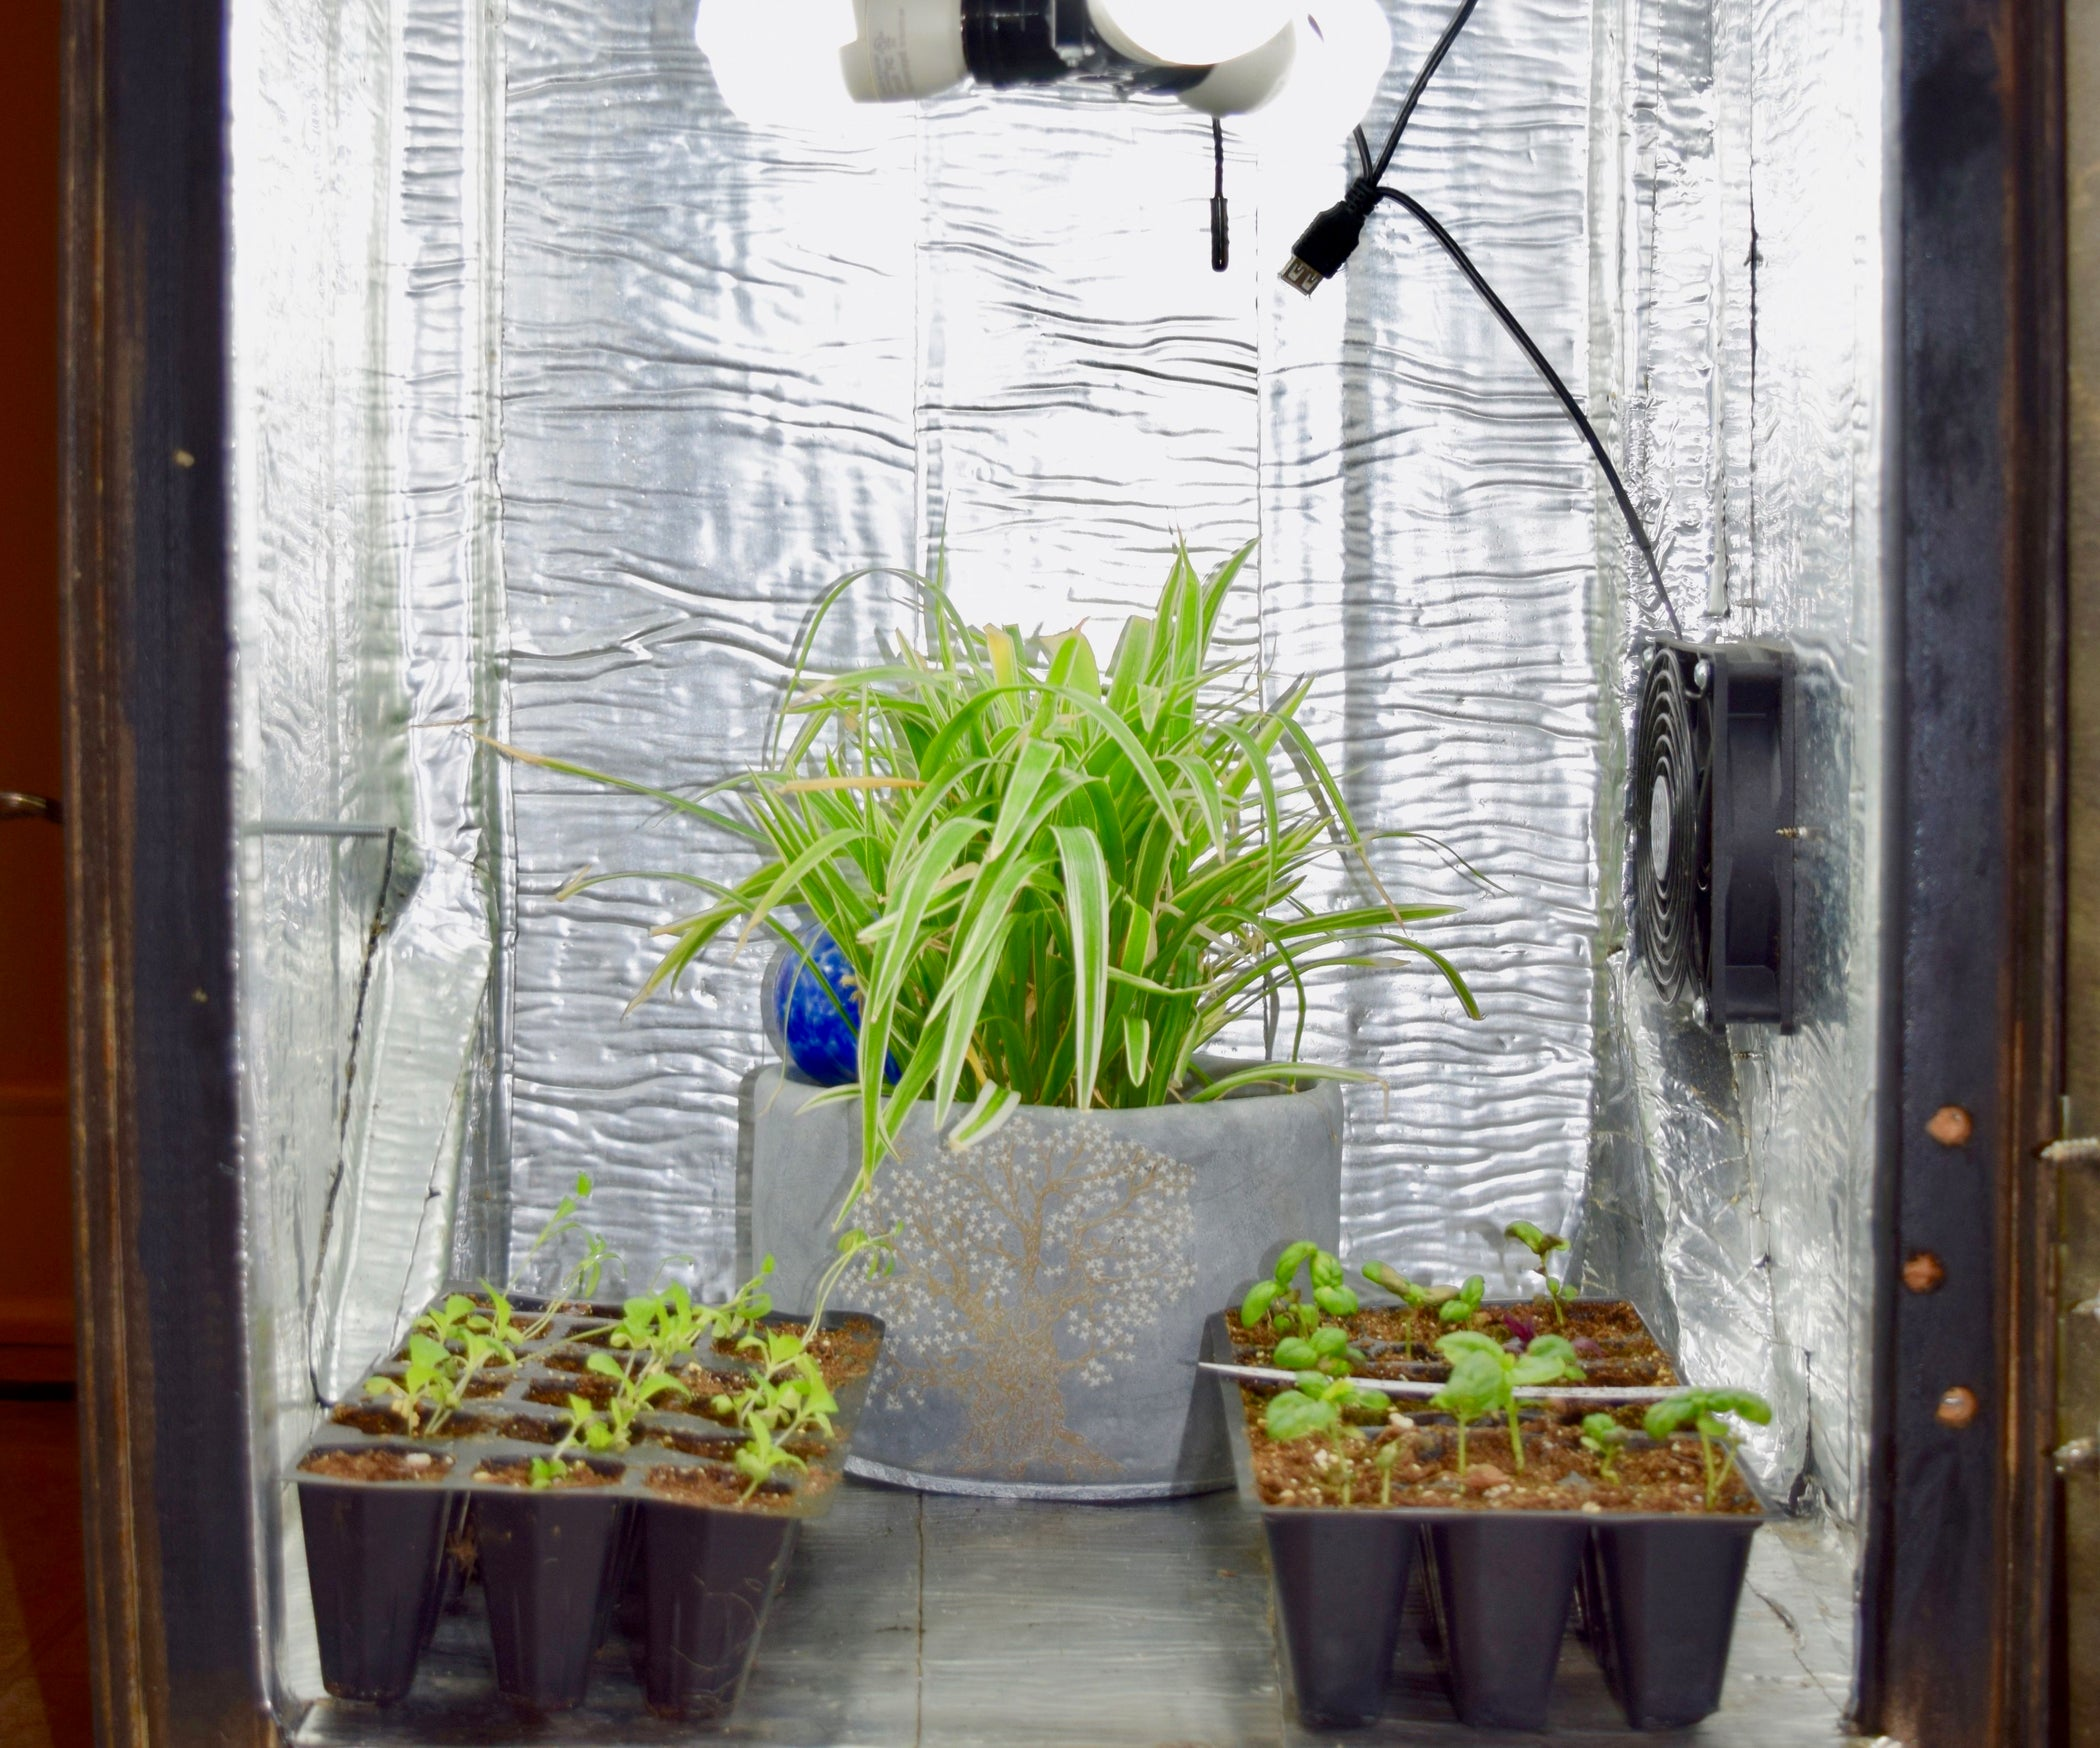 Diy Grow Box 8 Steps With Pictures Wiring Up Lights